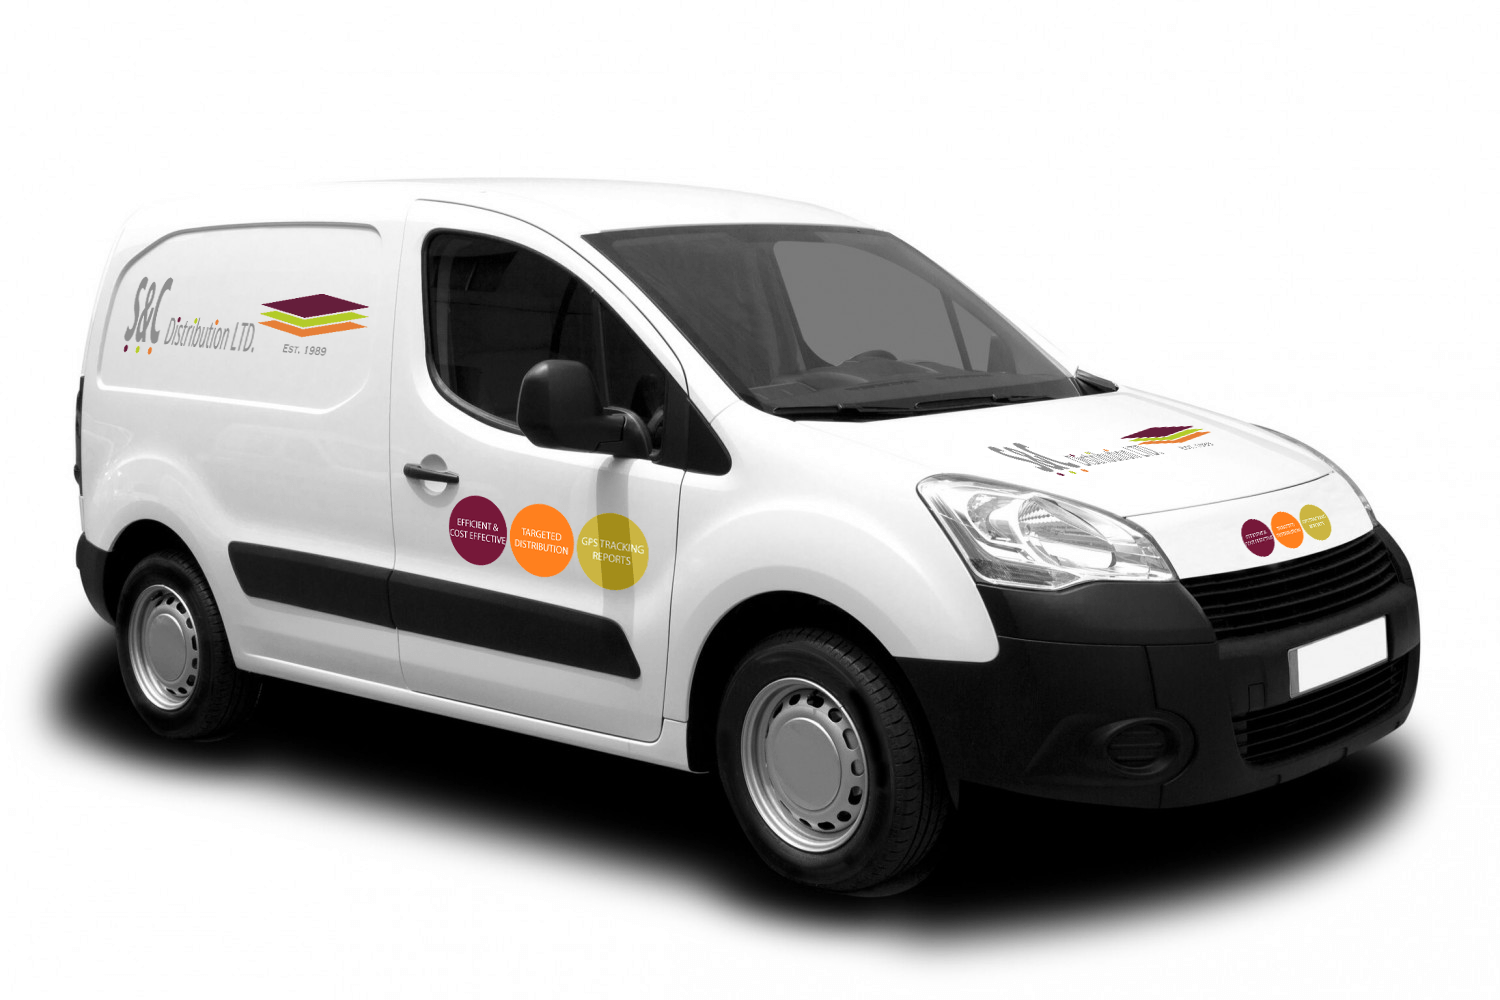 S & C Distribution Delivery Van